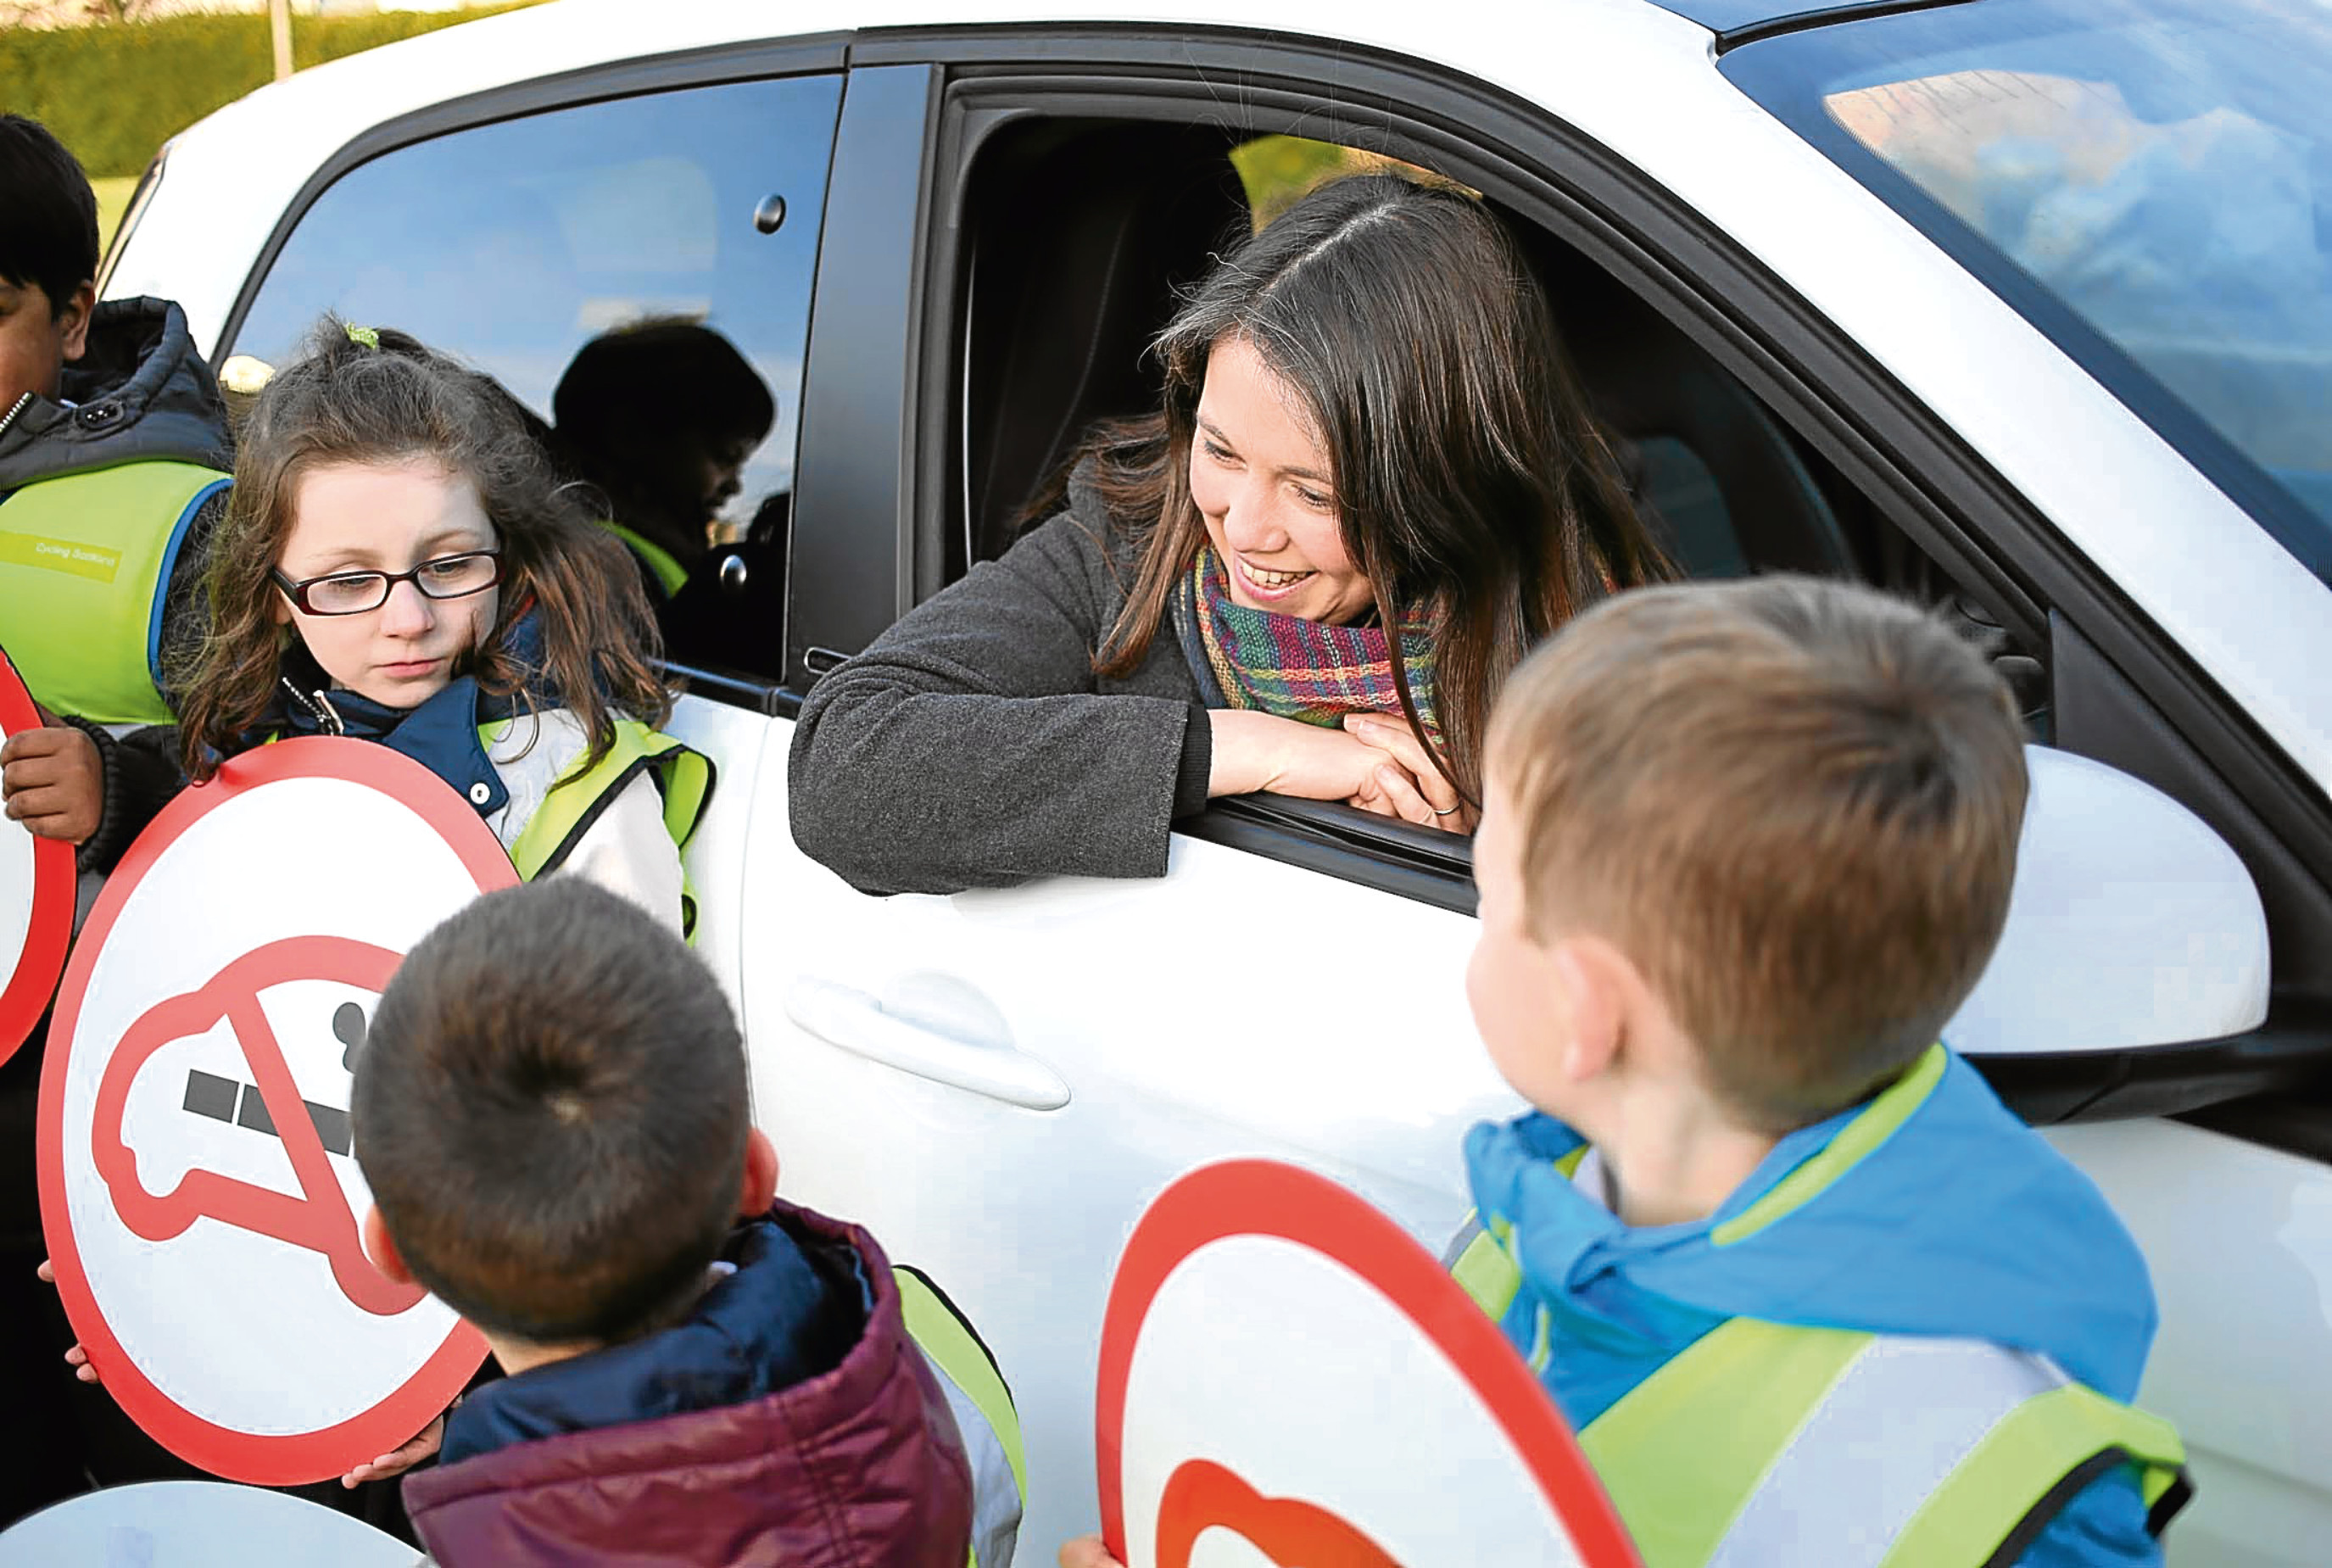 Aileen Campbell, Minister for Public Health and Sport, and some pupils from Edinburgh marked the day smoking in cars with children became illegal across Scotland in 2016